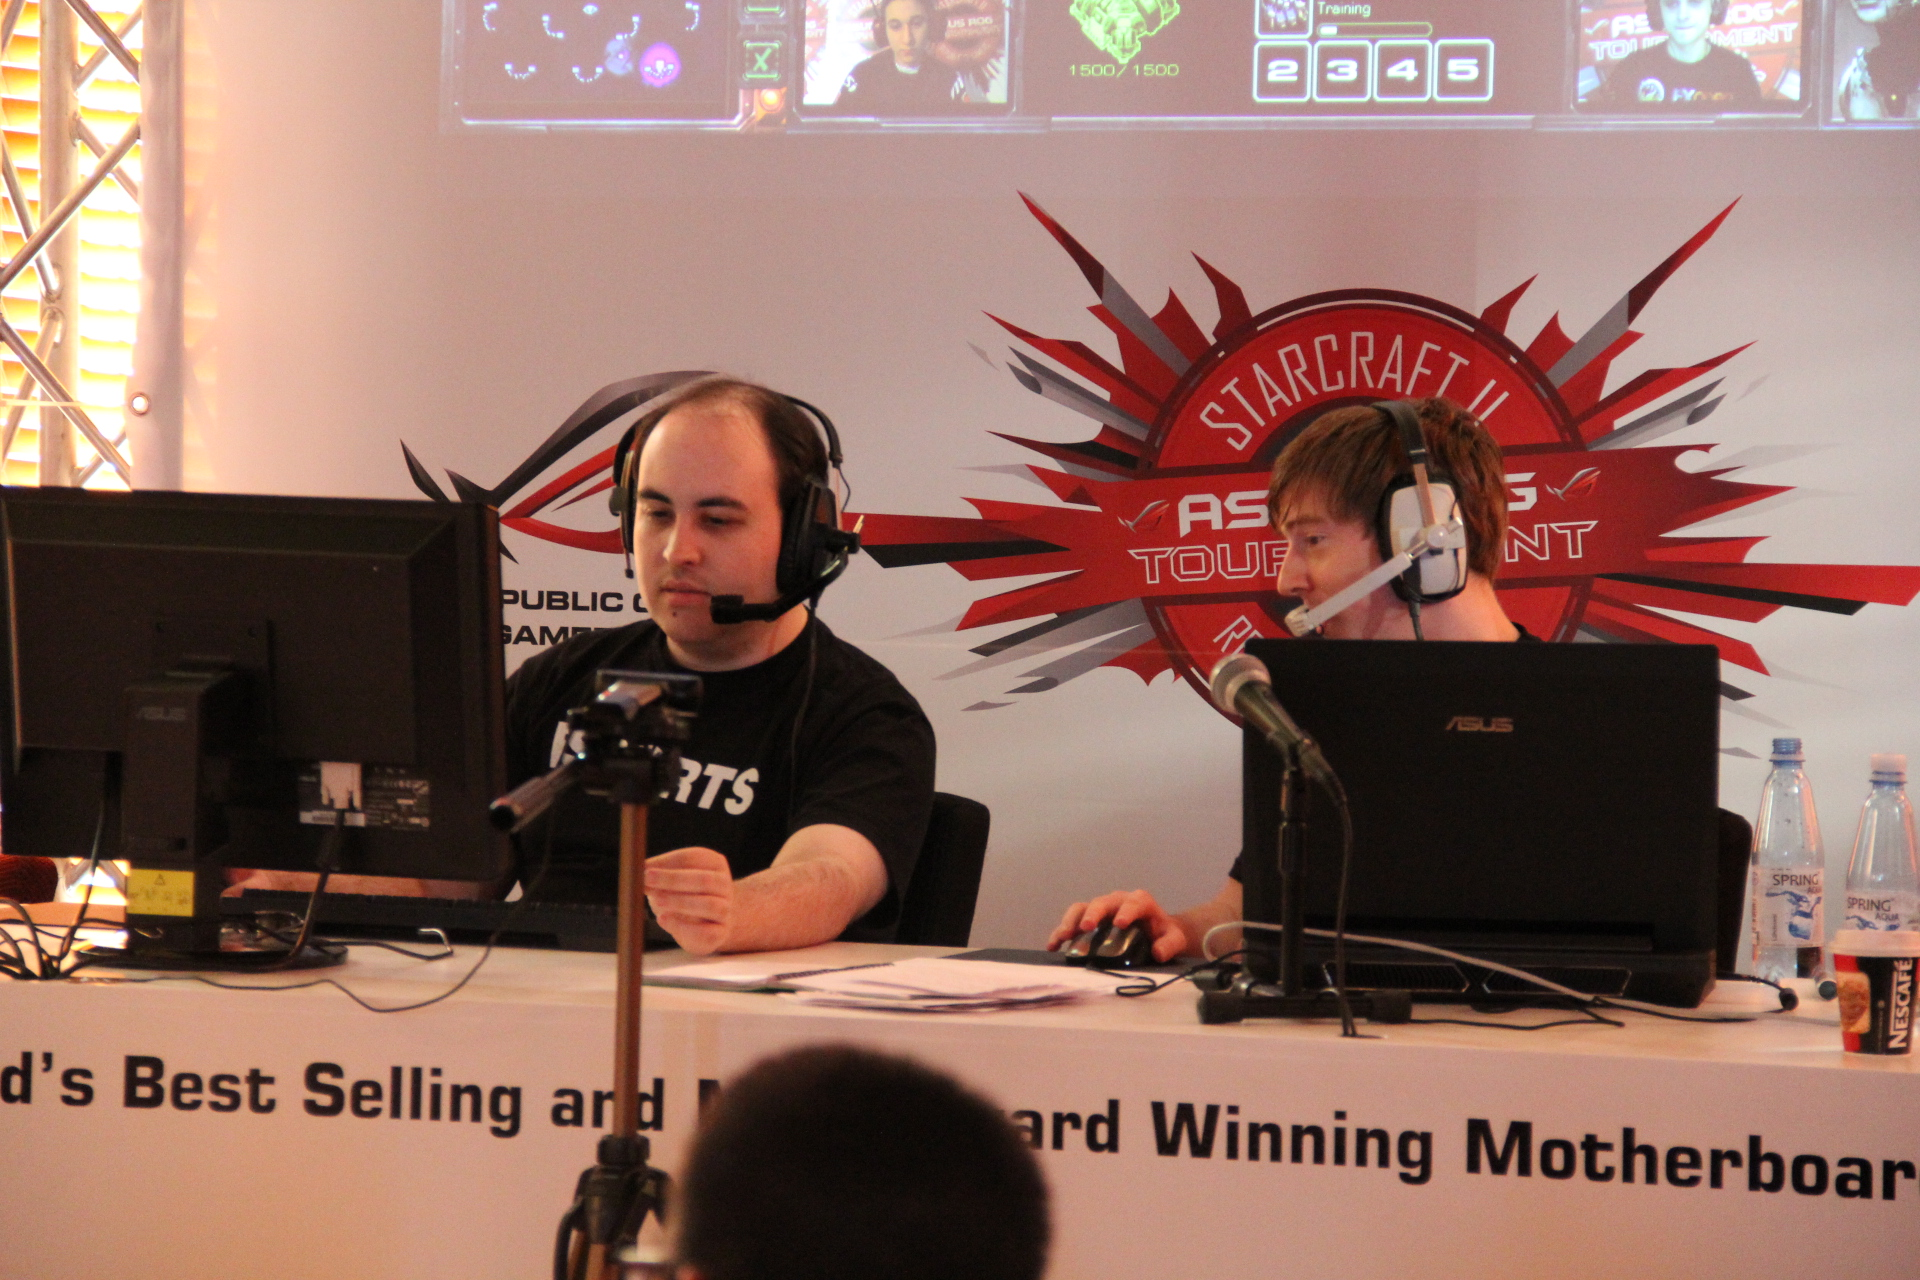 World Famous Shoutcasters TotalBiscuit (to the left) and Apollo